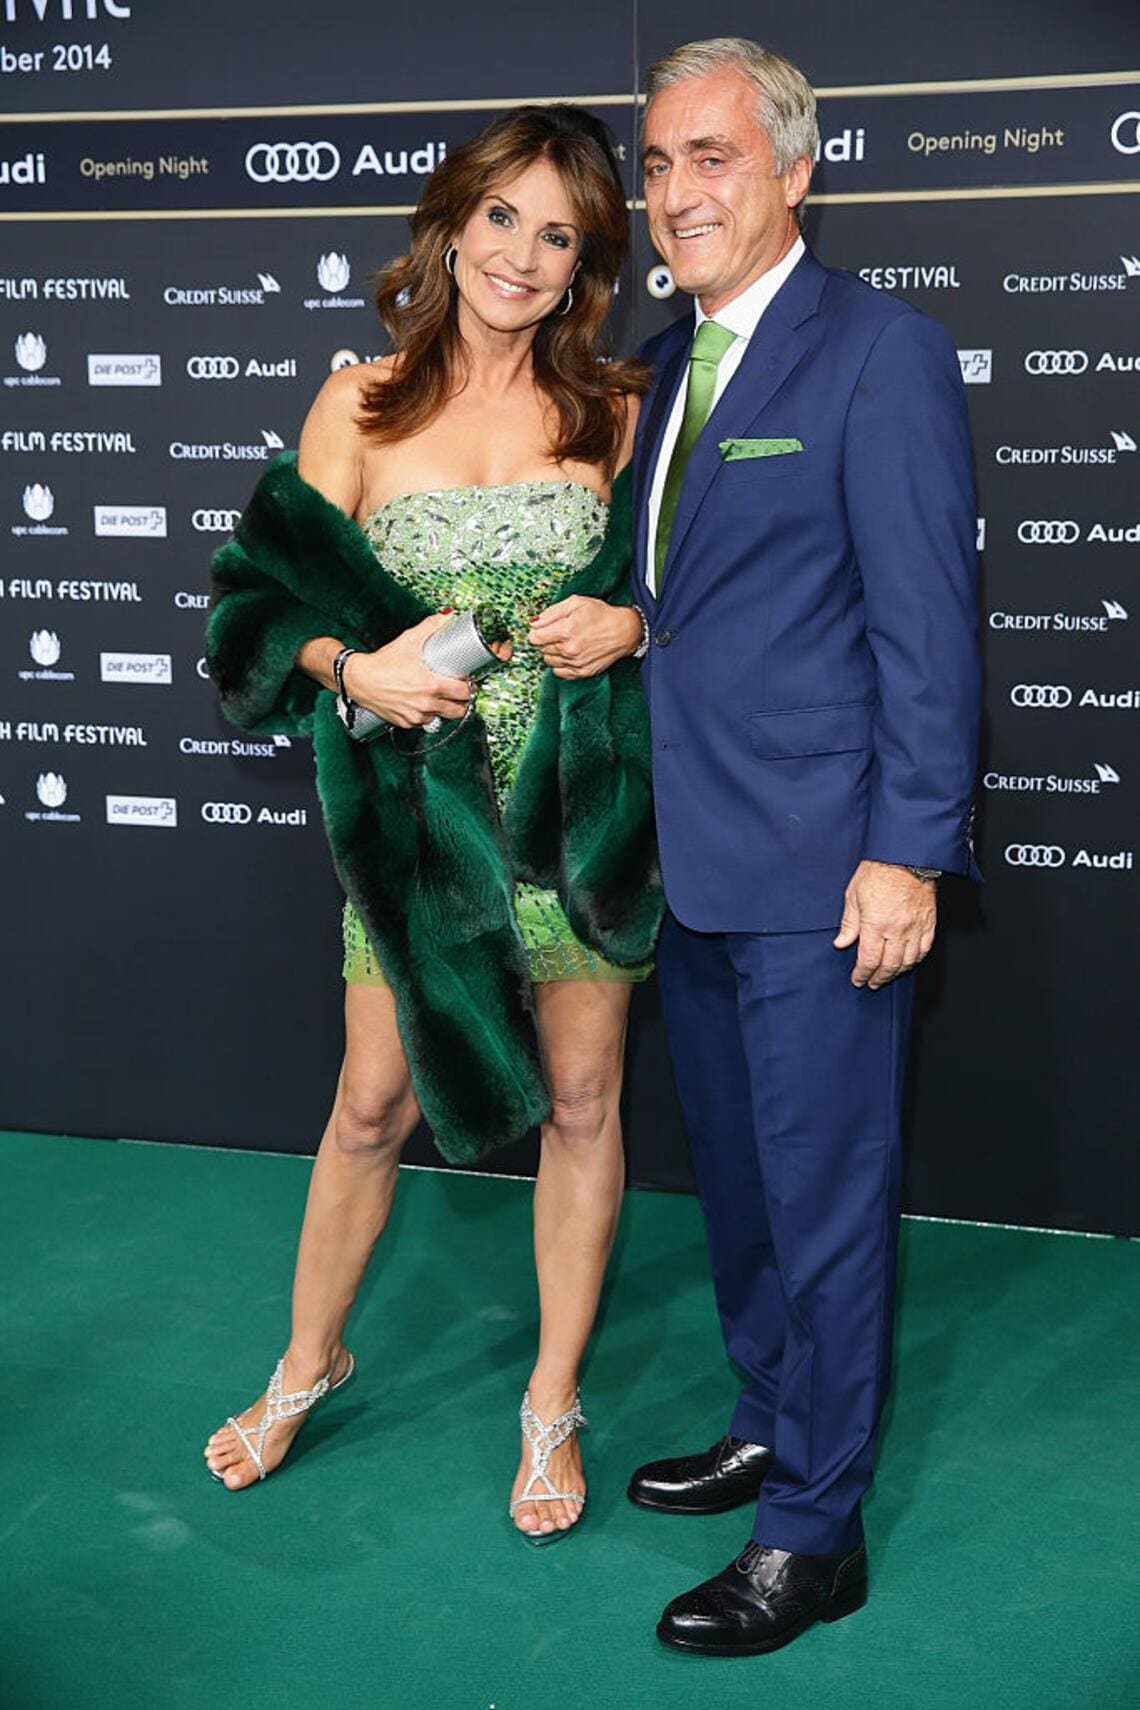 ZURICH, SWITZERLAND - SEPTEMBER 25:  Silvia Affolter and Ronald Sauser attend the 'Get On Up' Opening Film and Opening Ceremony of the Zurich Film Festival 2014 on September 25, 2014 in Zurich, Switzerland.  (Photo by Vittorio Zunino Celotto/Getty Images for ZFF)